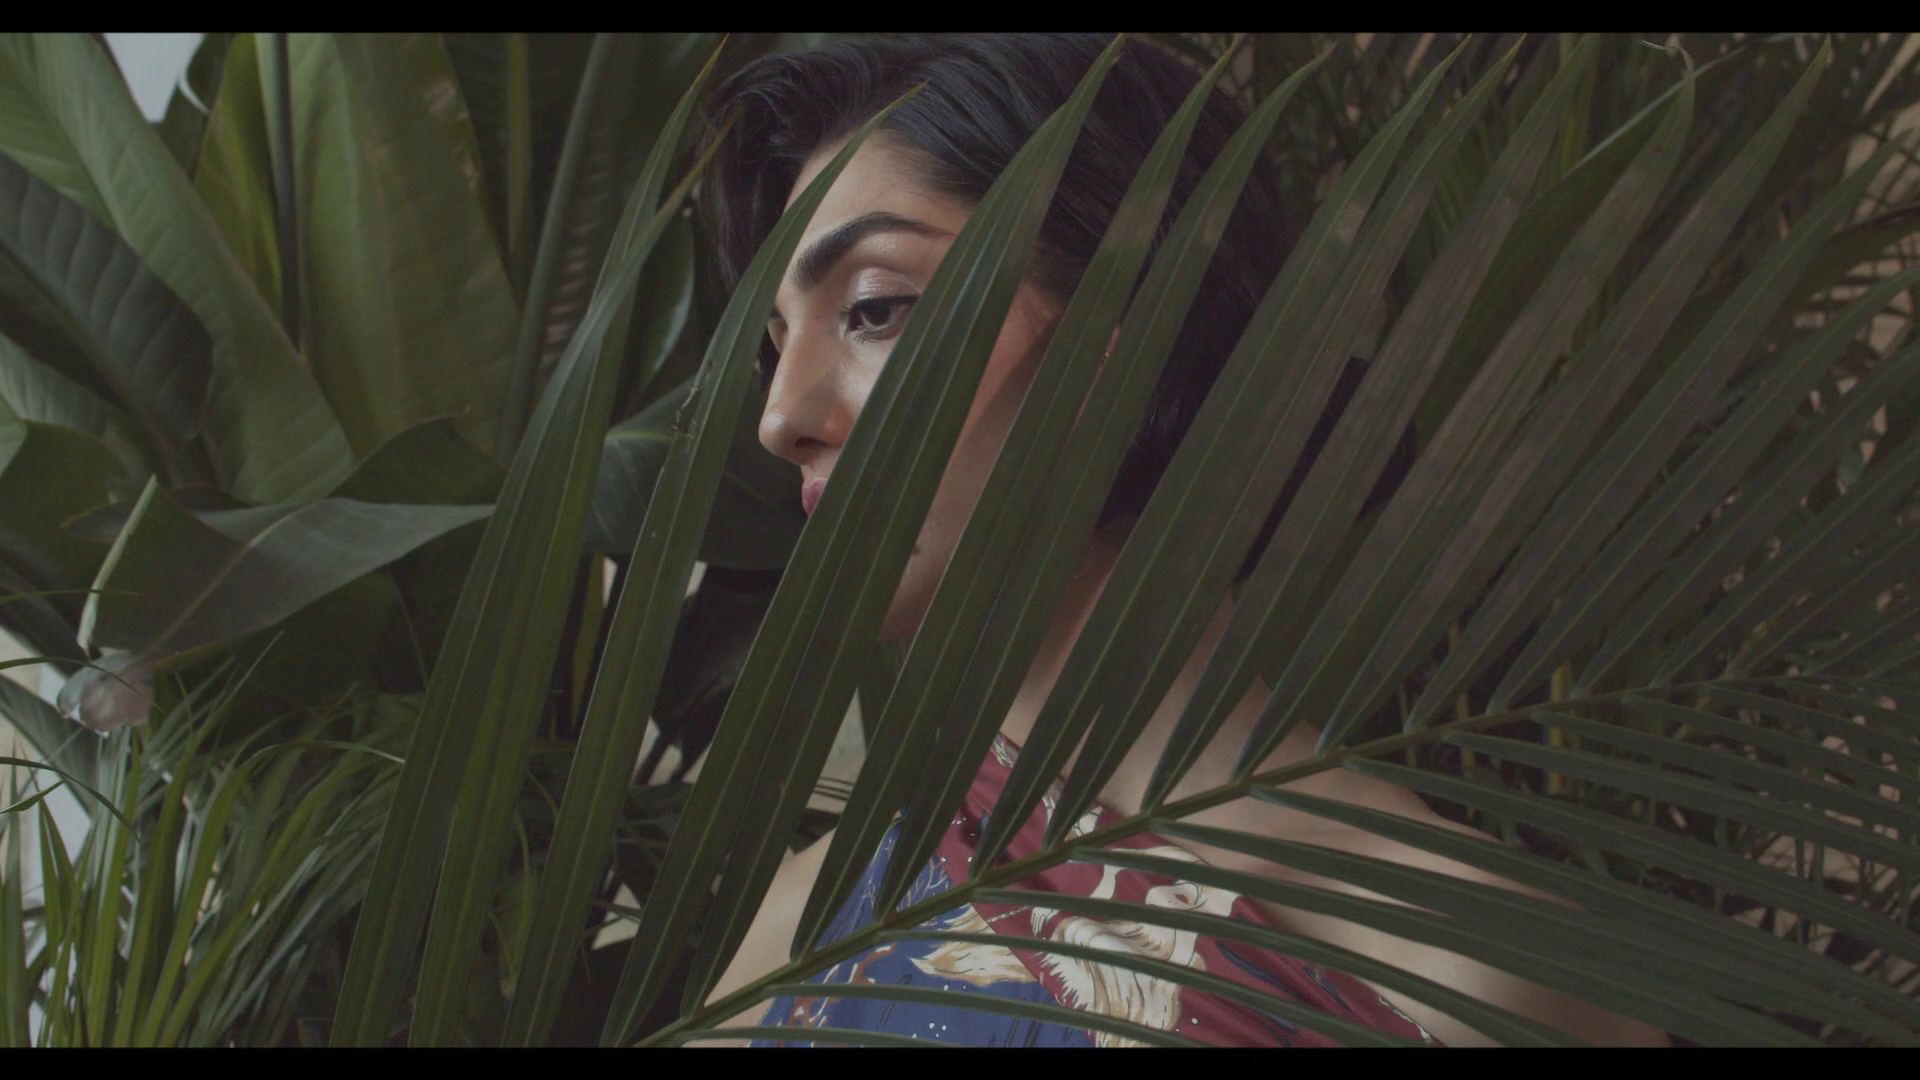 A model is partly obscured by a tropical plant